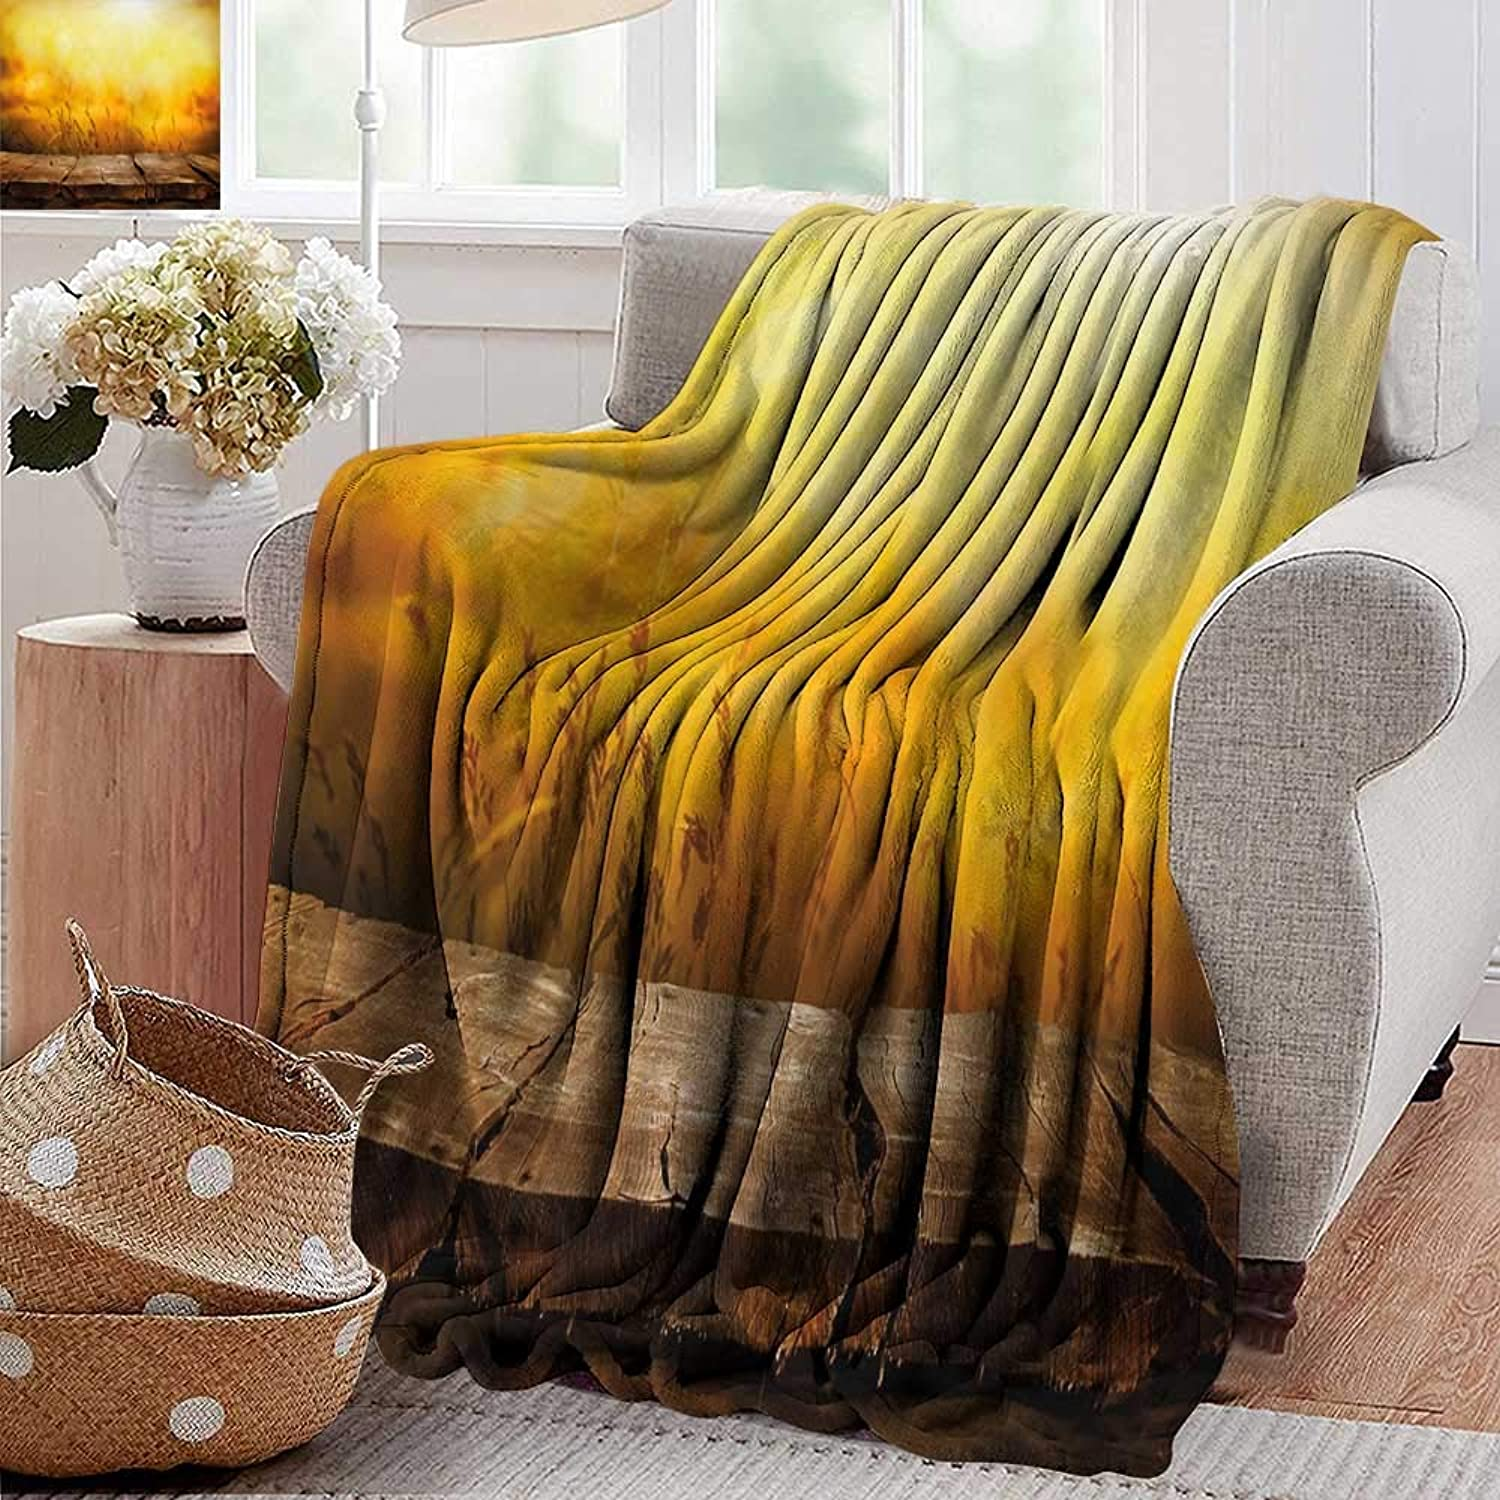 PearlRolan Weighted Blanket for Kids,Fall,Empty Wooden Tabletop Layout Setting Sun Afternoon Wheat Agriculture Print,Brown orange Yellow,Weighted Blanket for Adults Kids, Better Deeper Sleep 50 x60